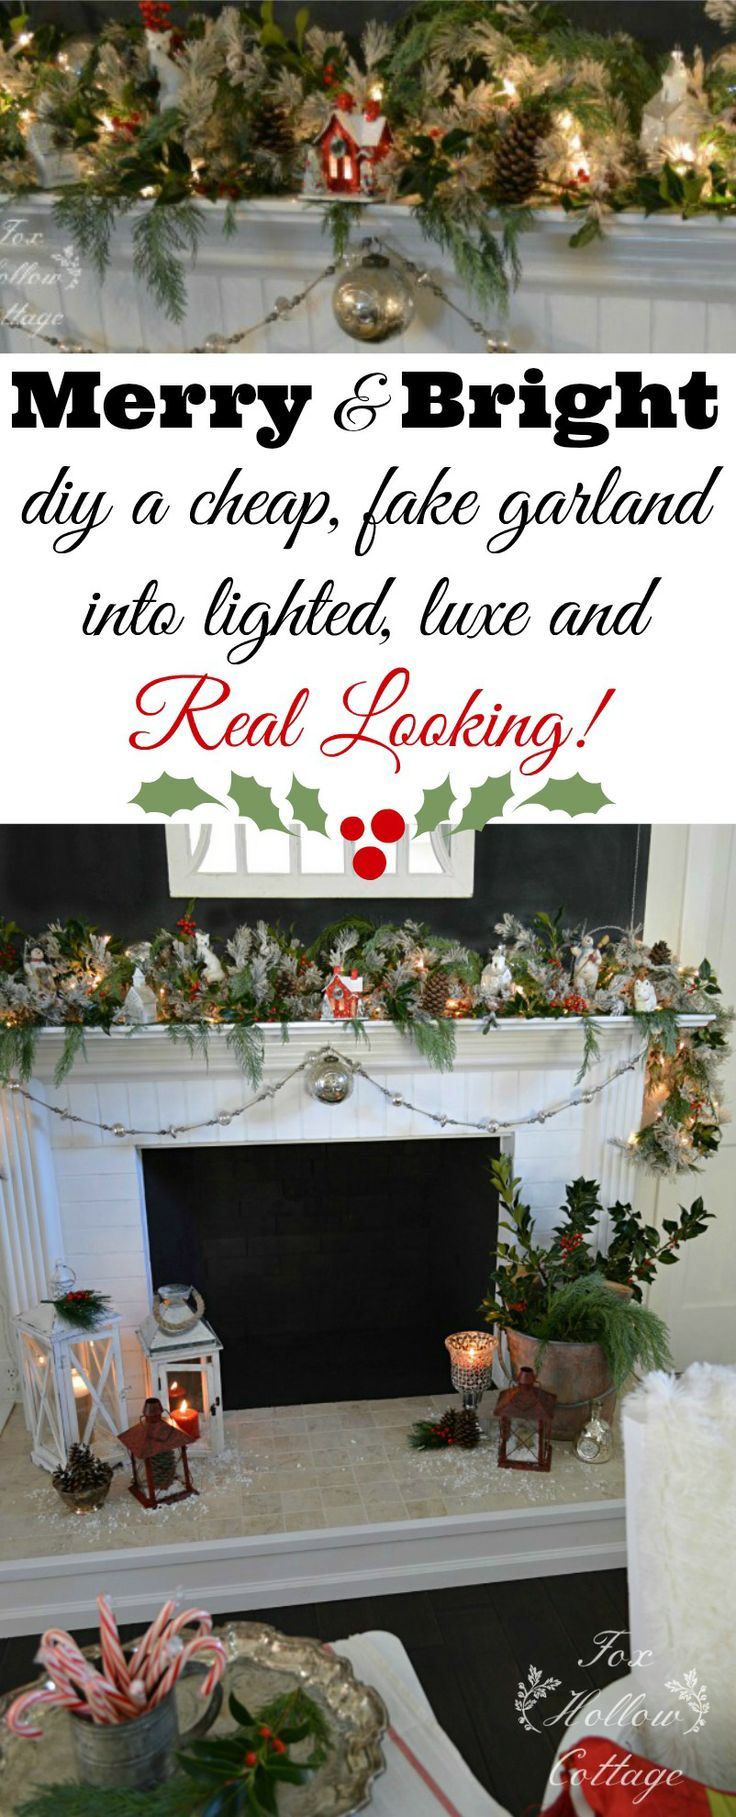 Use this tip to make your faux garland look like the real thing! Super cheap, often Free. #Christmas #tip #Christmasdecorating #ideas